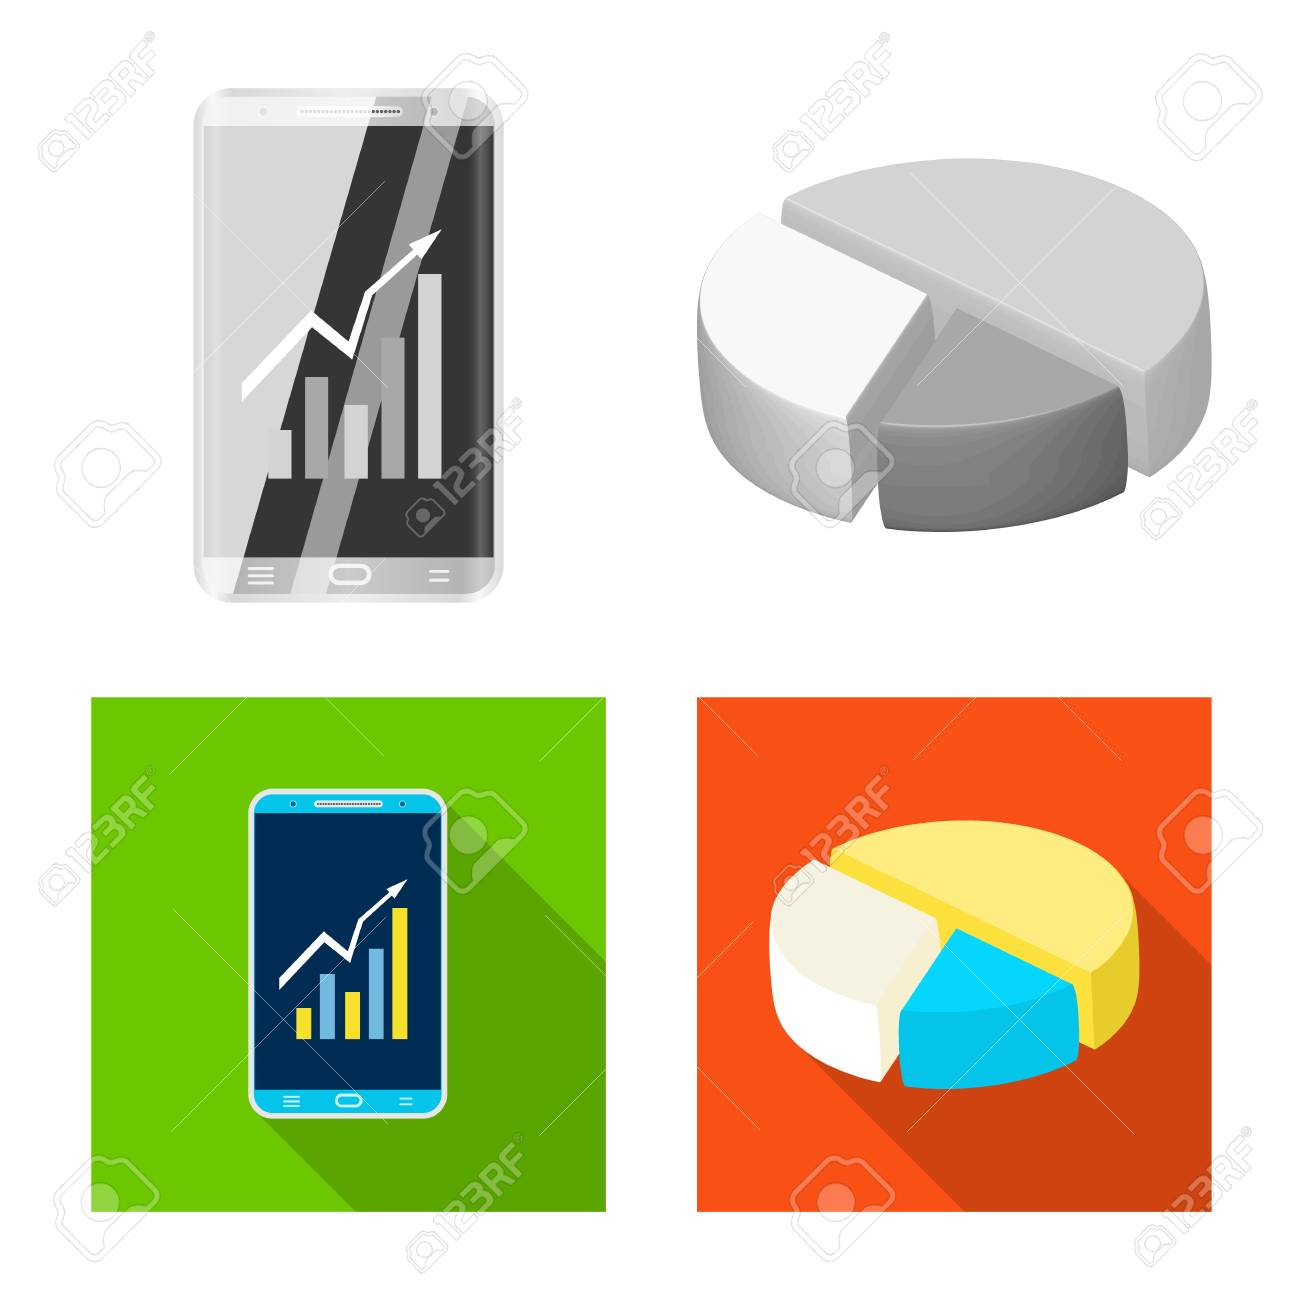 Design On Stock Bank.Vector Design Of Bank And Money Sign Collection Of Bank And